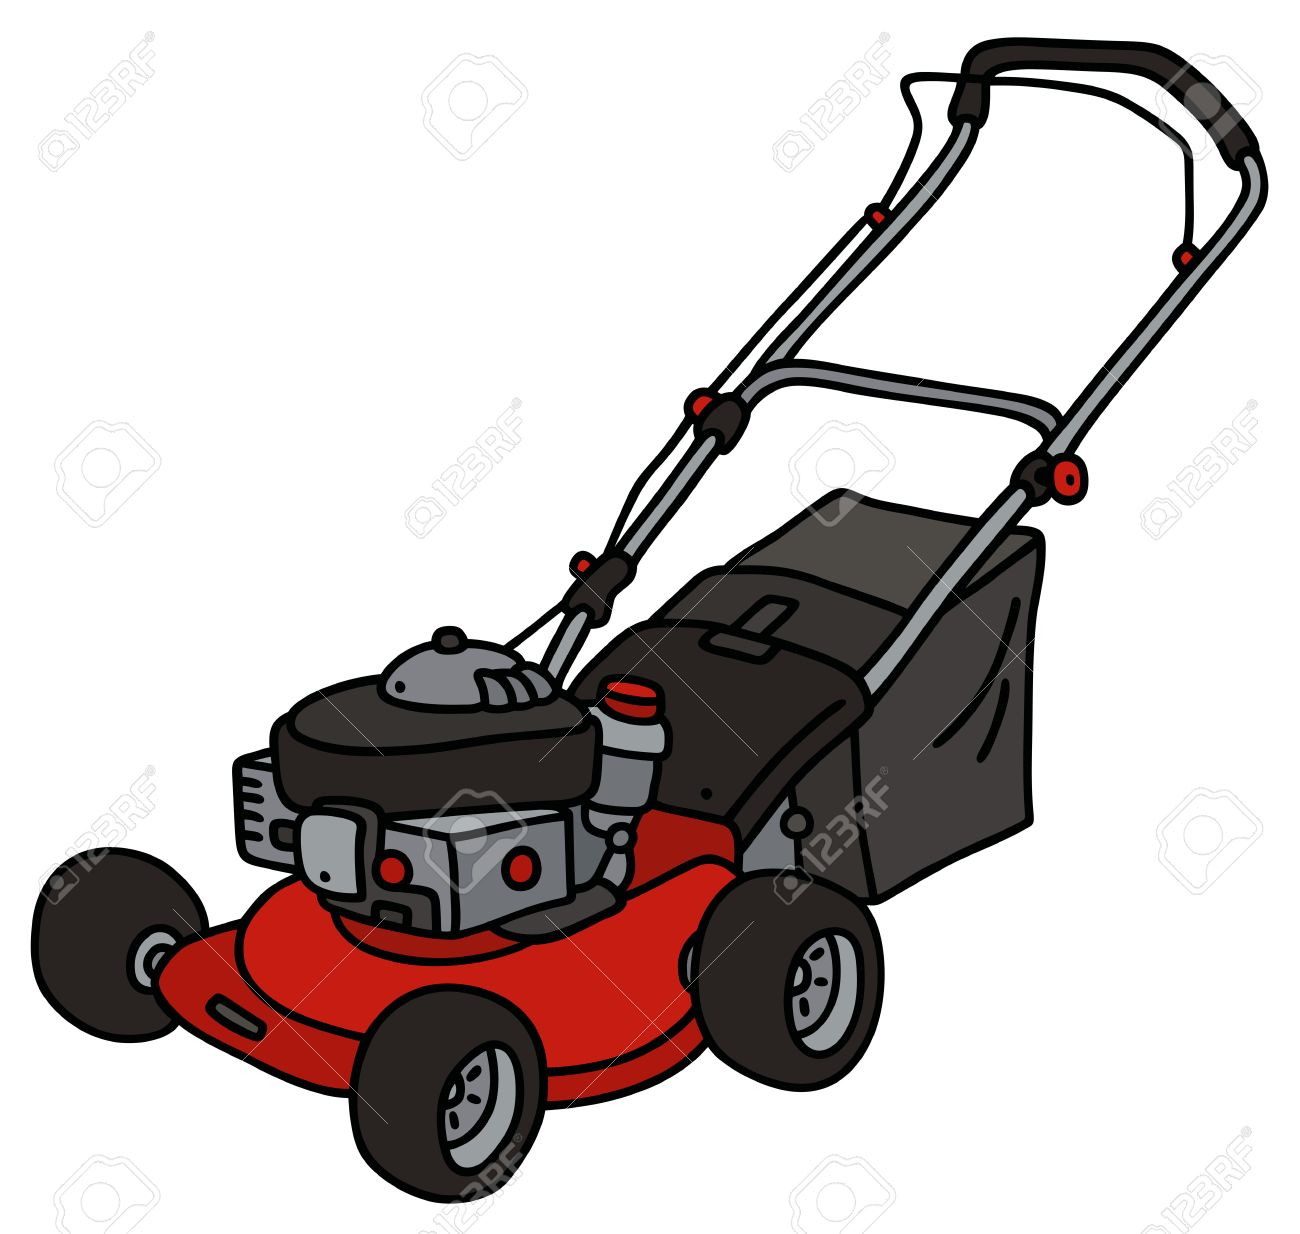 lawn mower drawing at getdrawings com free for personal use lawn rh getdrawings com cartoon lawn mower clipart free